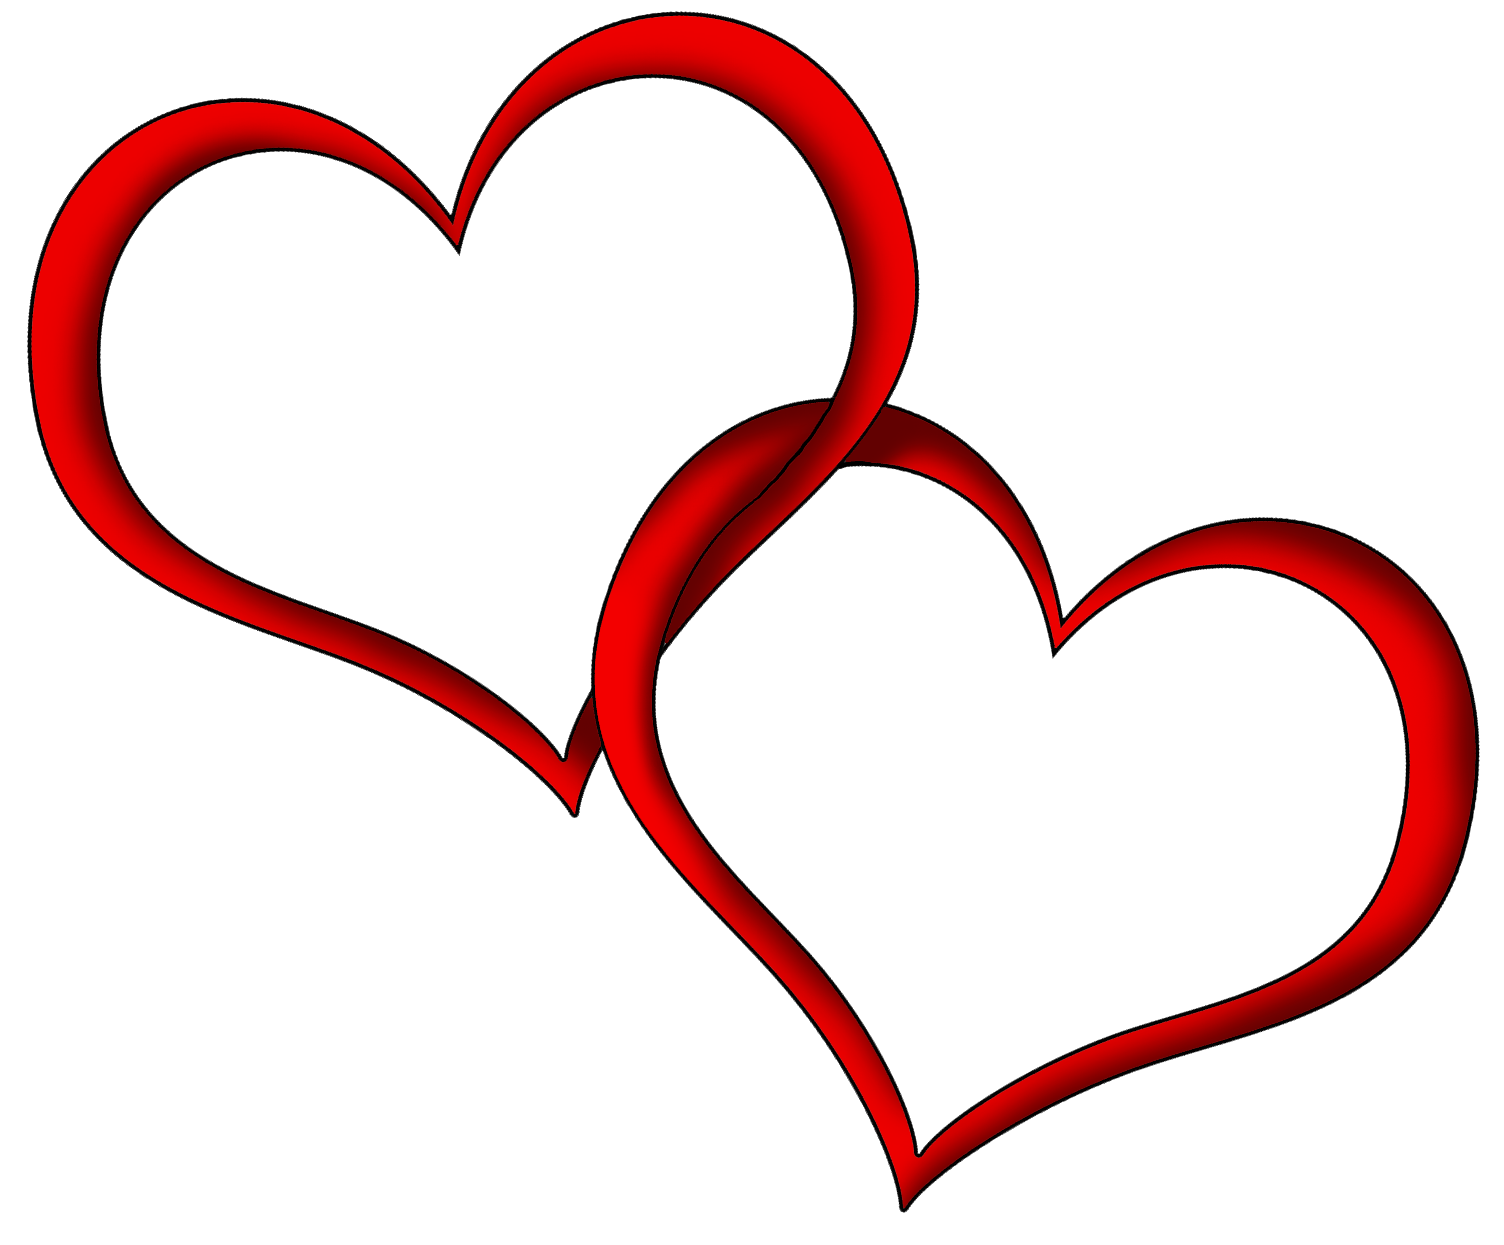 1504x1245 Hearts Heart Clipart.png Campus Recreation